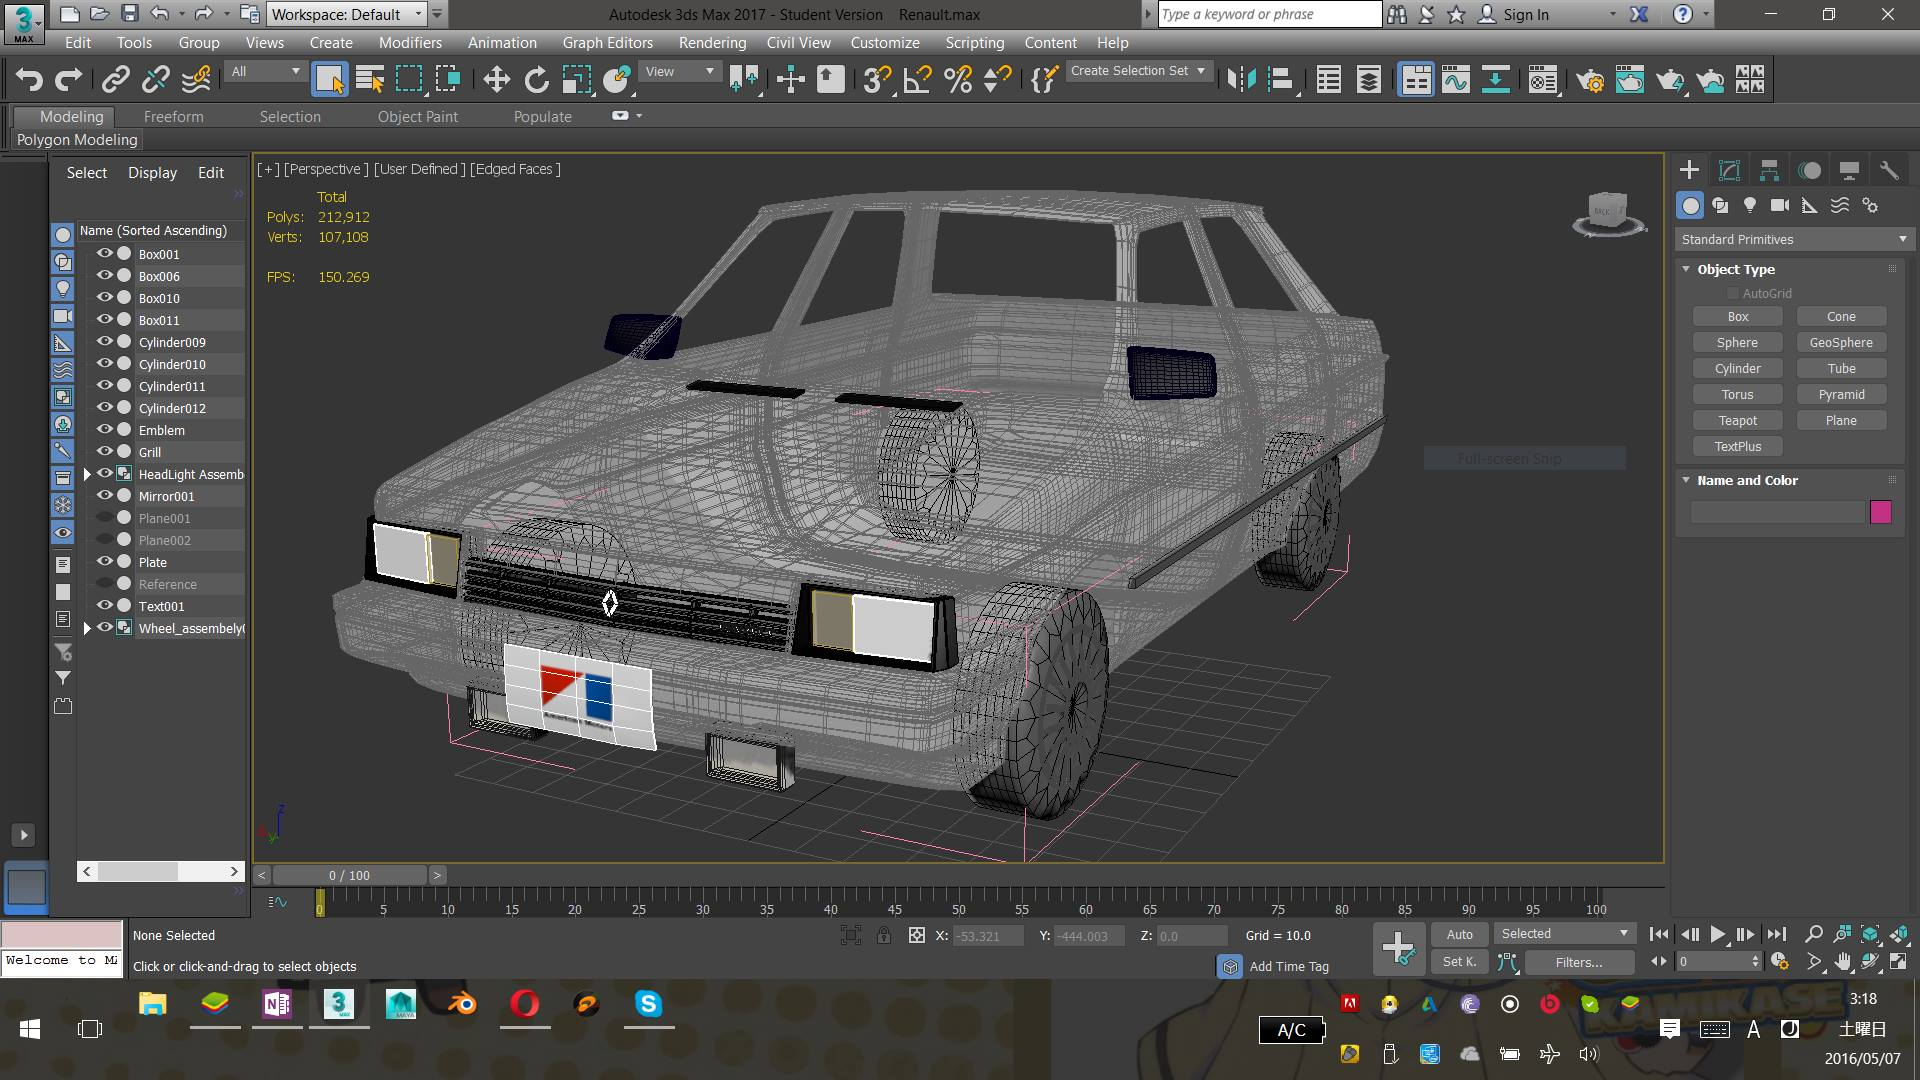 Building a Renault Alliance in 3DS Max